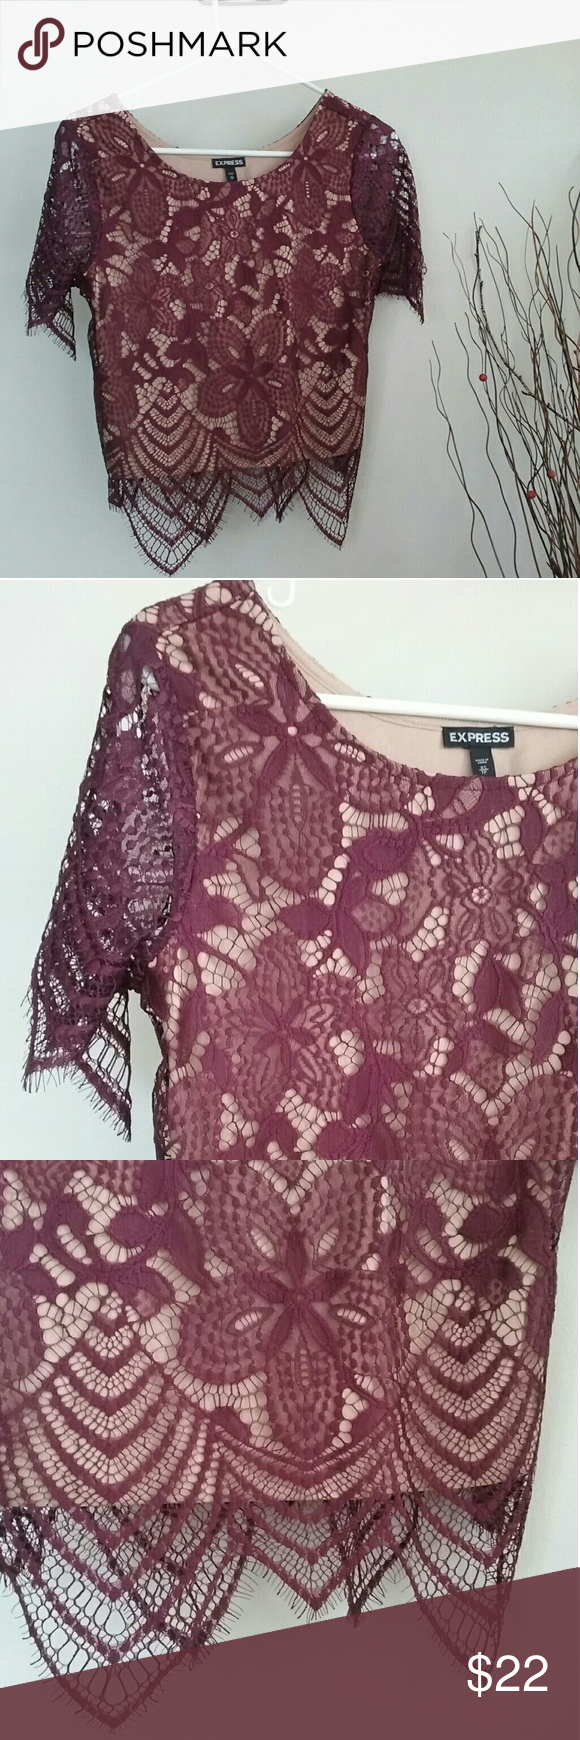 b0076887050 EXPRESS Maroon Tan Lace Crop Top XS New, without tags. Wine/maroon lace  with tan inlet. Express Tops Crop Tops